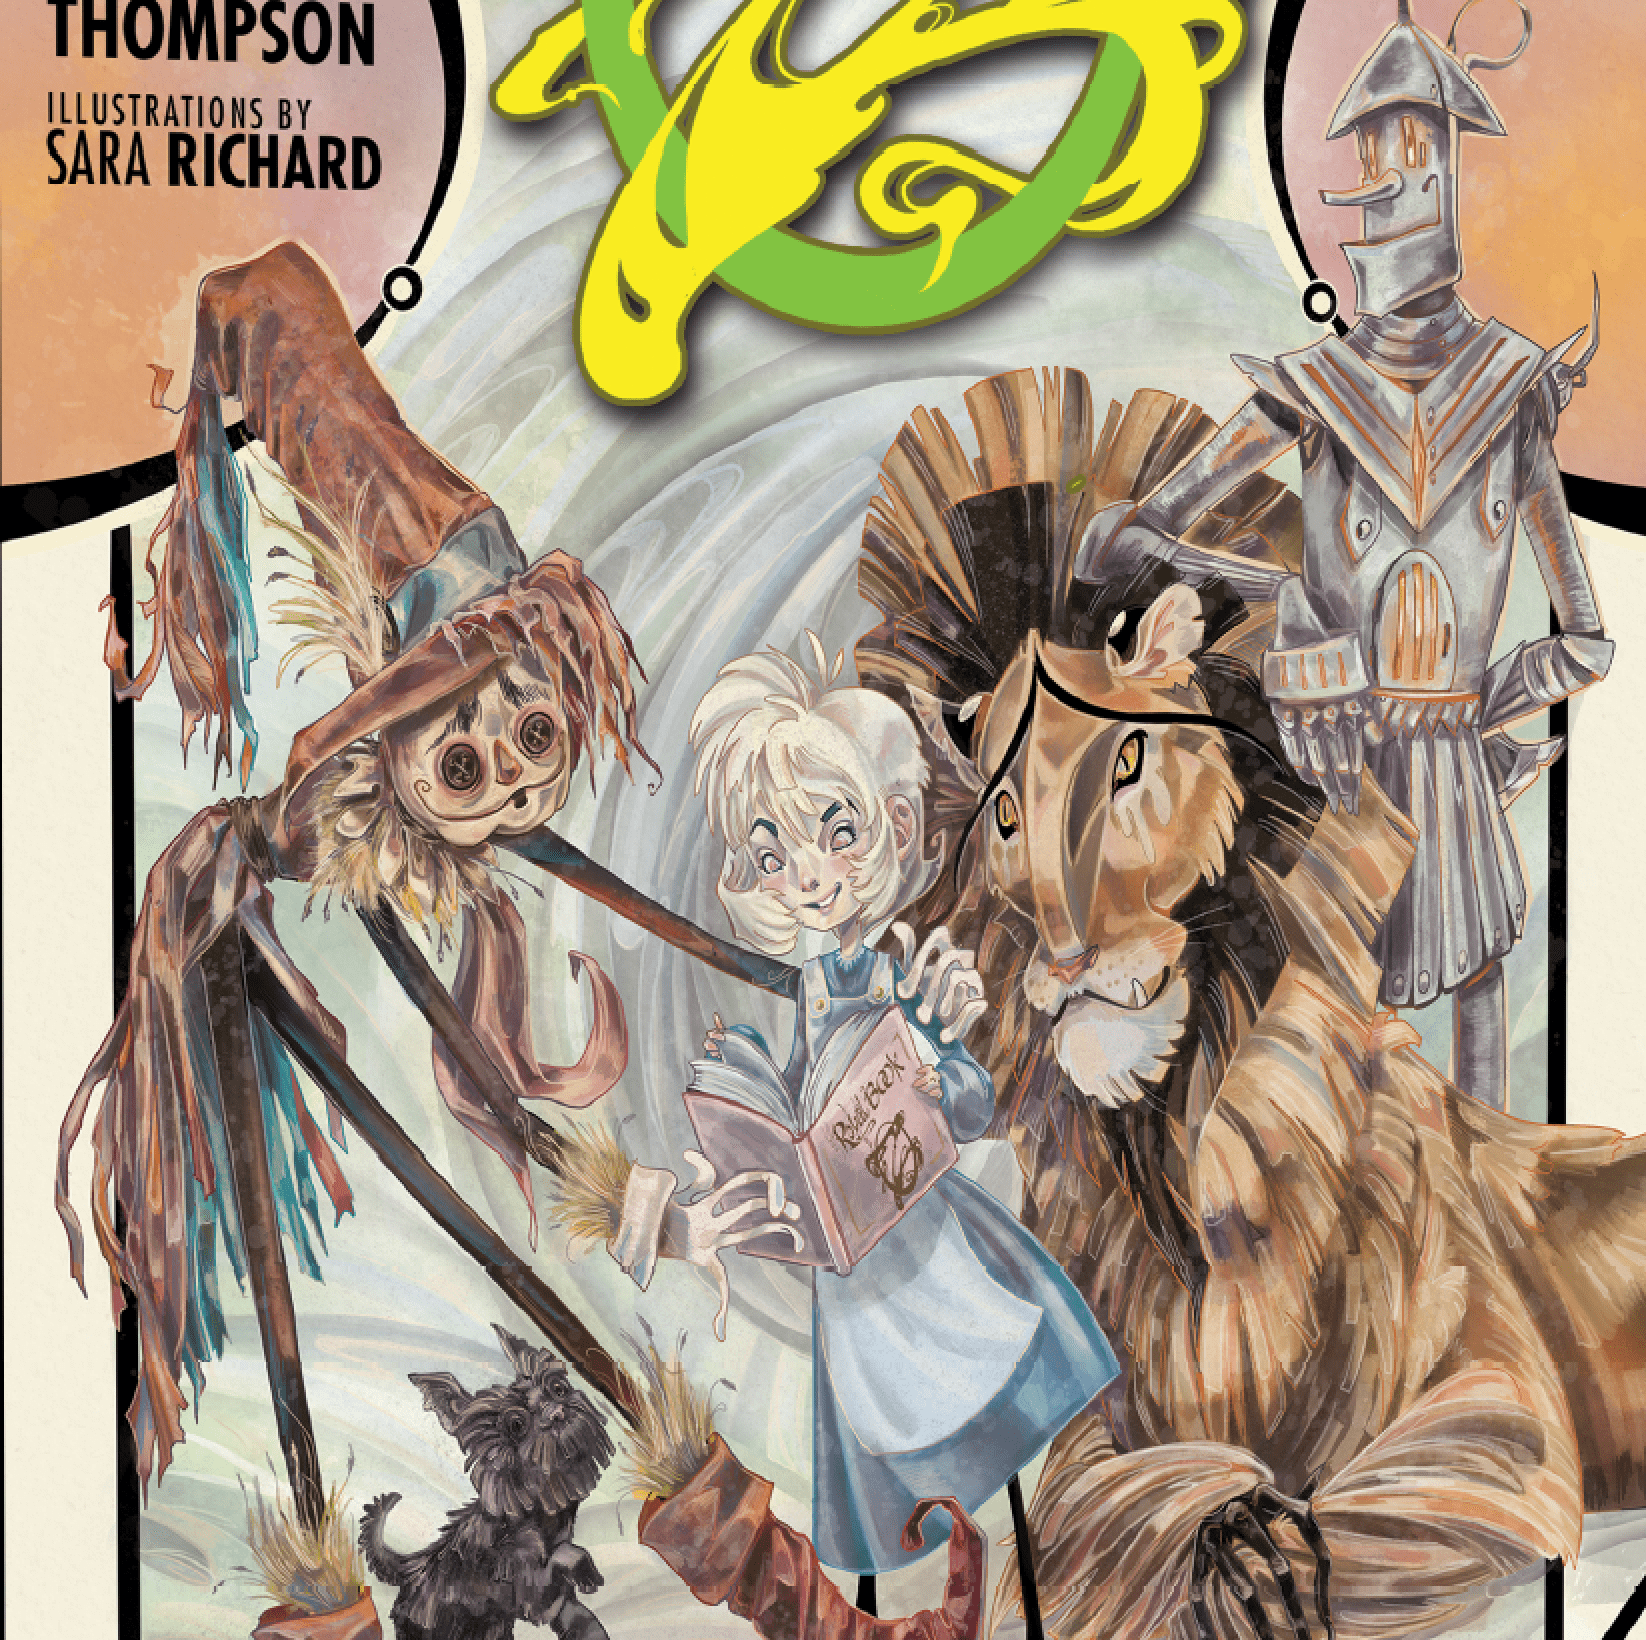 Kickstarter Alert: The Royal Book Of Oz by Ruth Plumly Thompson